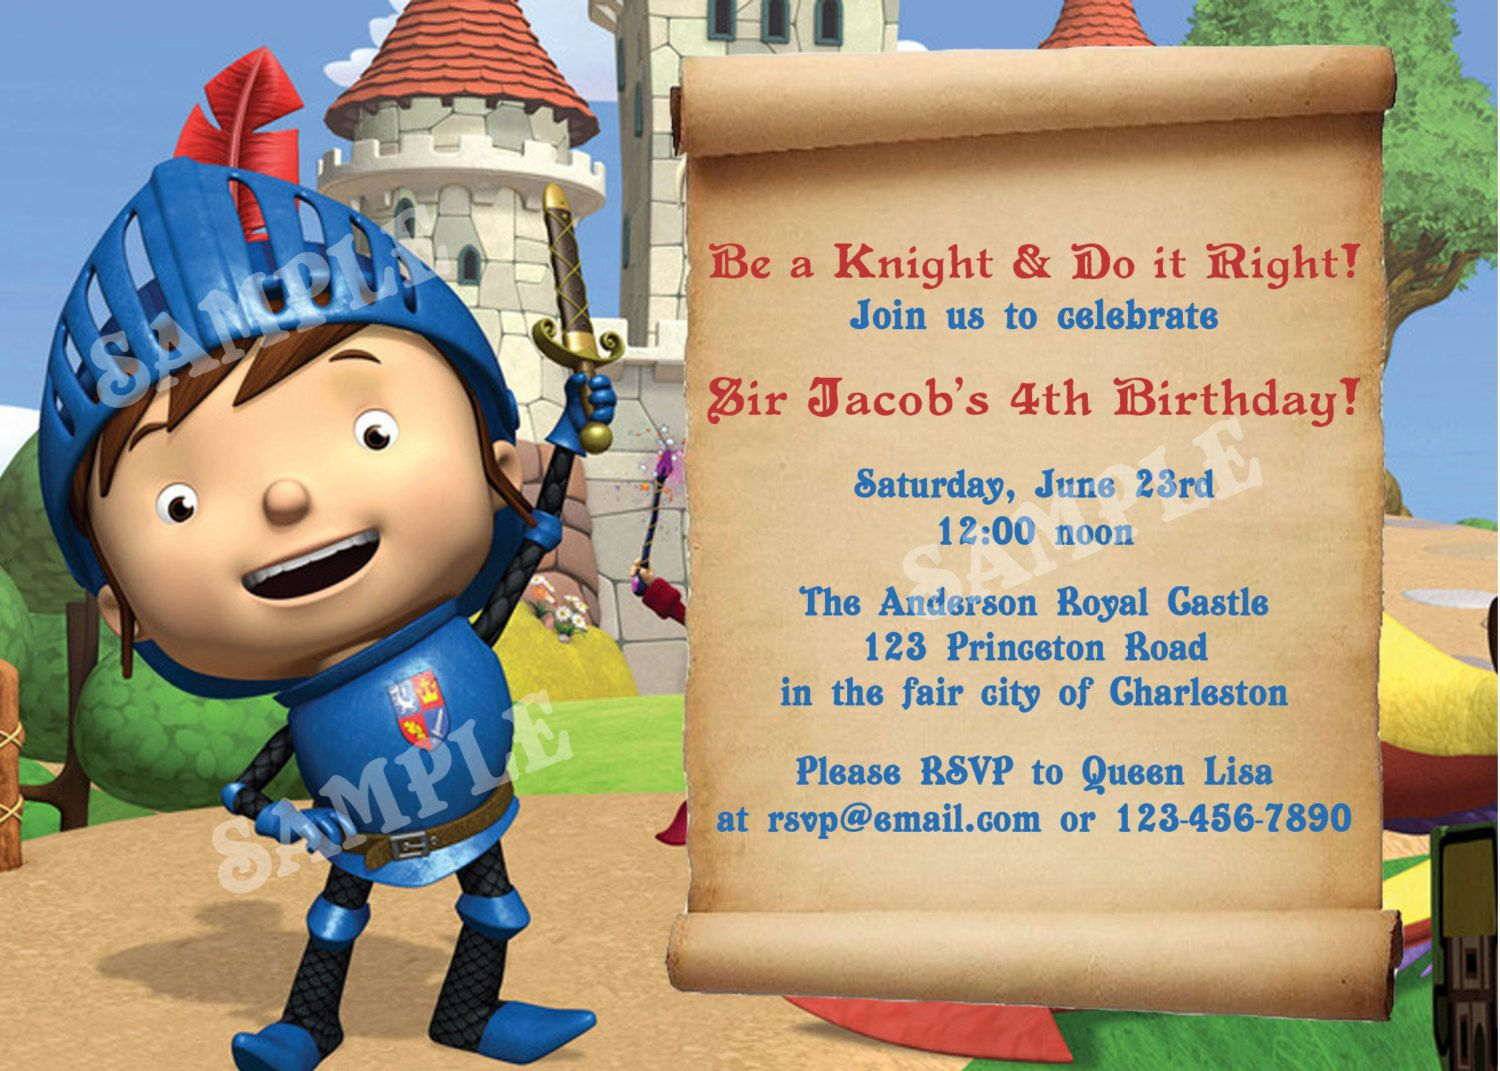 887db2cdcb47c42729458a01baf5e203 mike the knight birthday diy printable party invitation 4x6 or,Knight Birthday Party Invitations